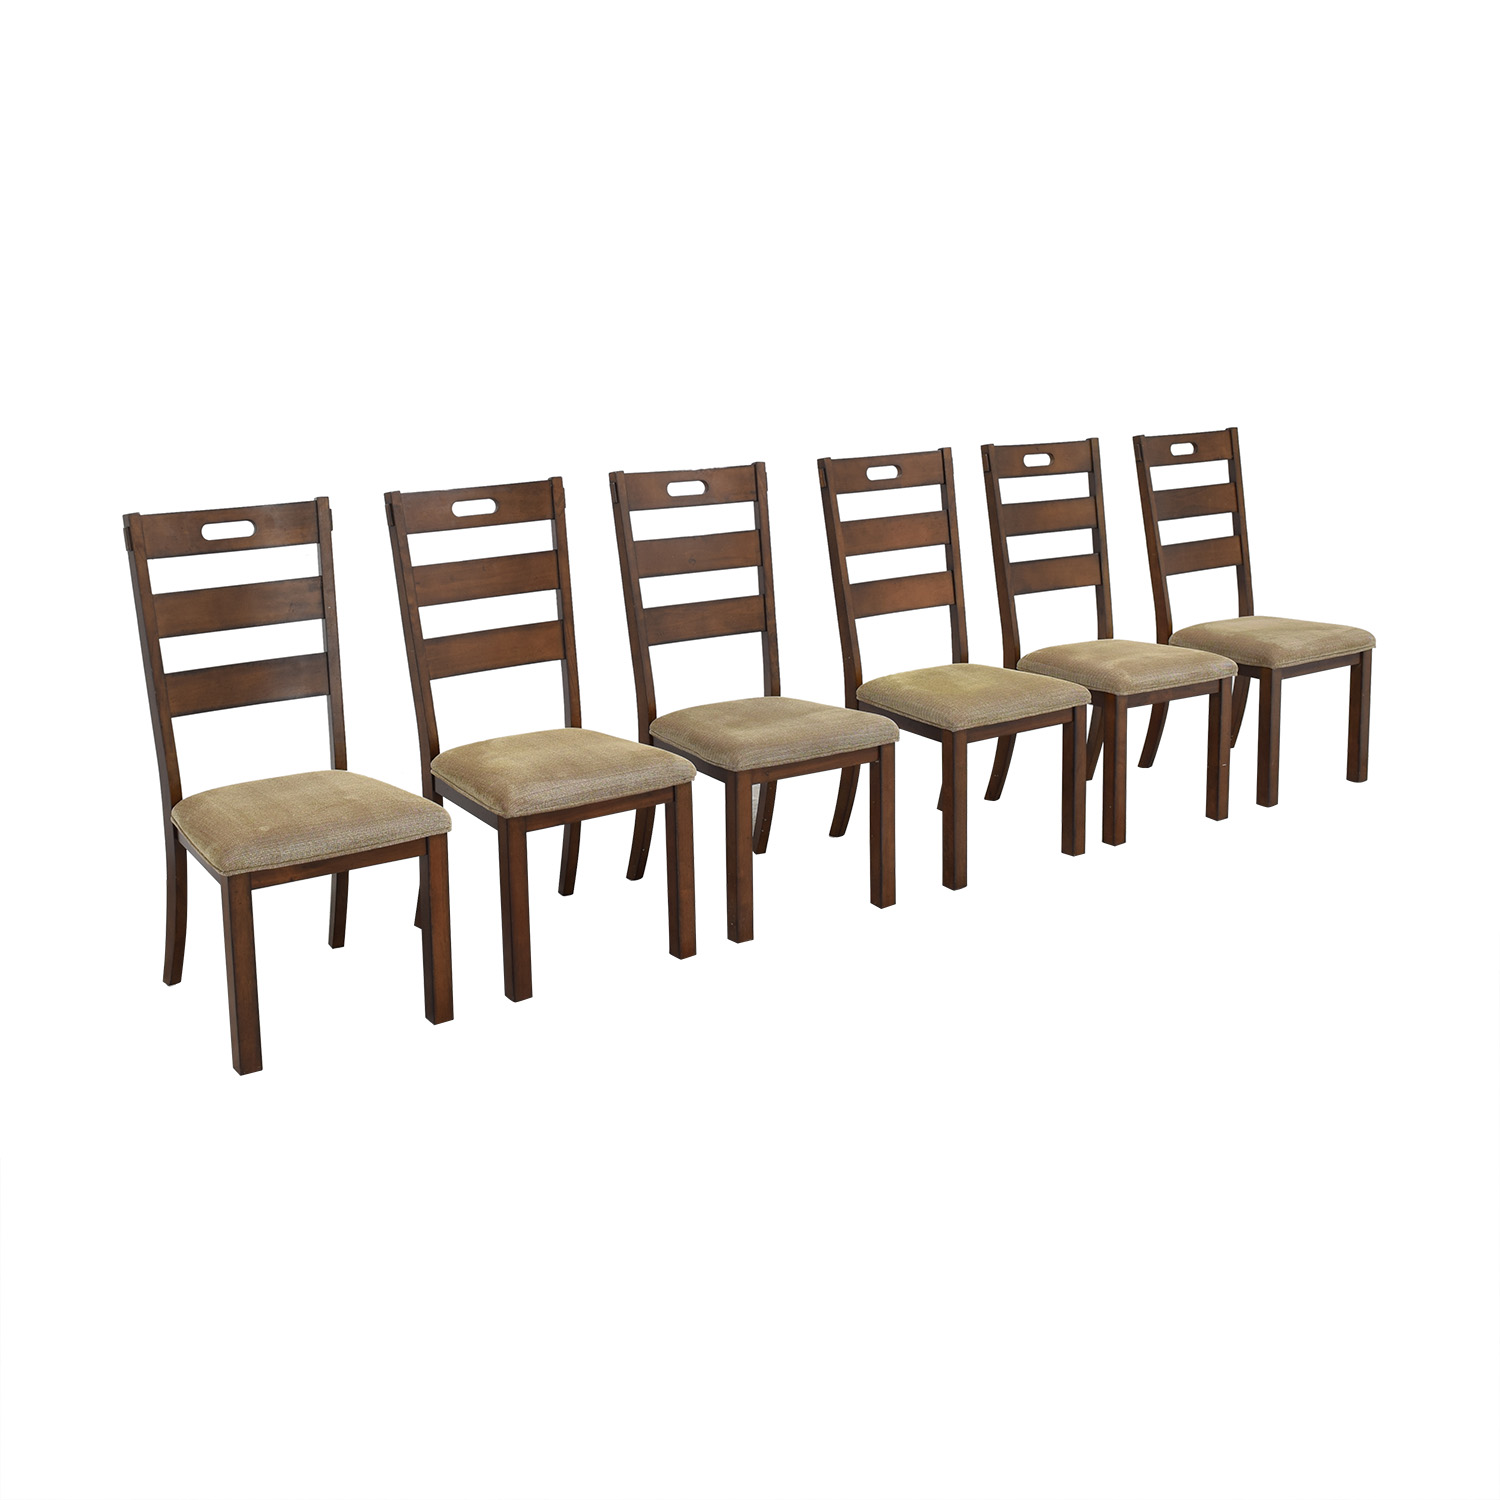 Wayfair Ladder Back Upholstered Dining Chairs Wayfair